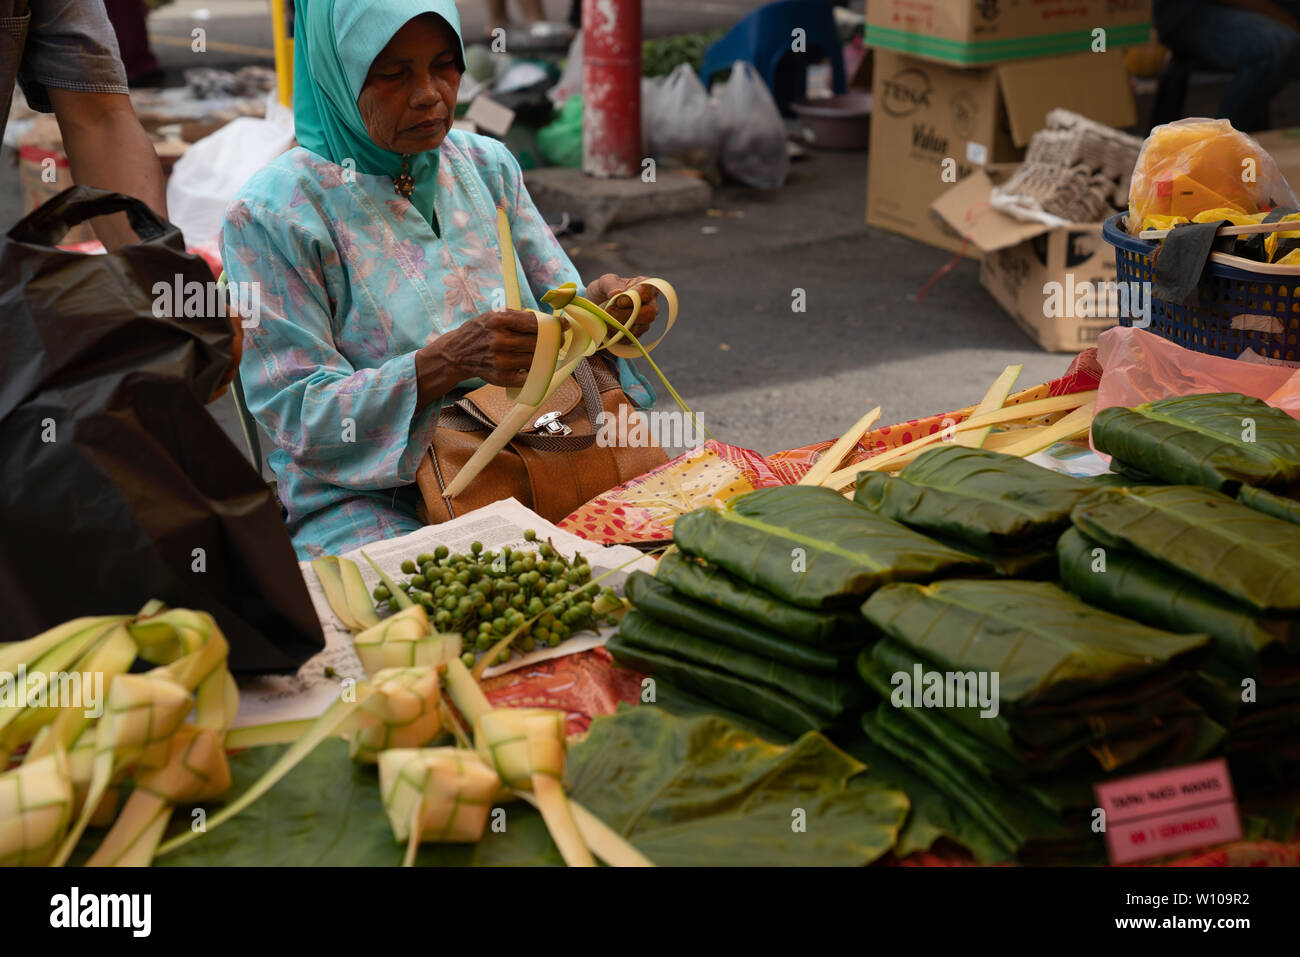 KOTA KINABULU, BORNEO - JUNE 2  PACKS PRODUCT FOR CUSTOMER.  Kota Kinabalu Sunday Gaya Street market seller  in Muslim attire making banana leaf wrapp - Stock Image